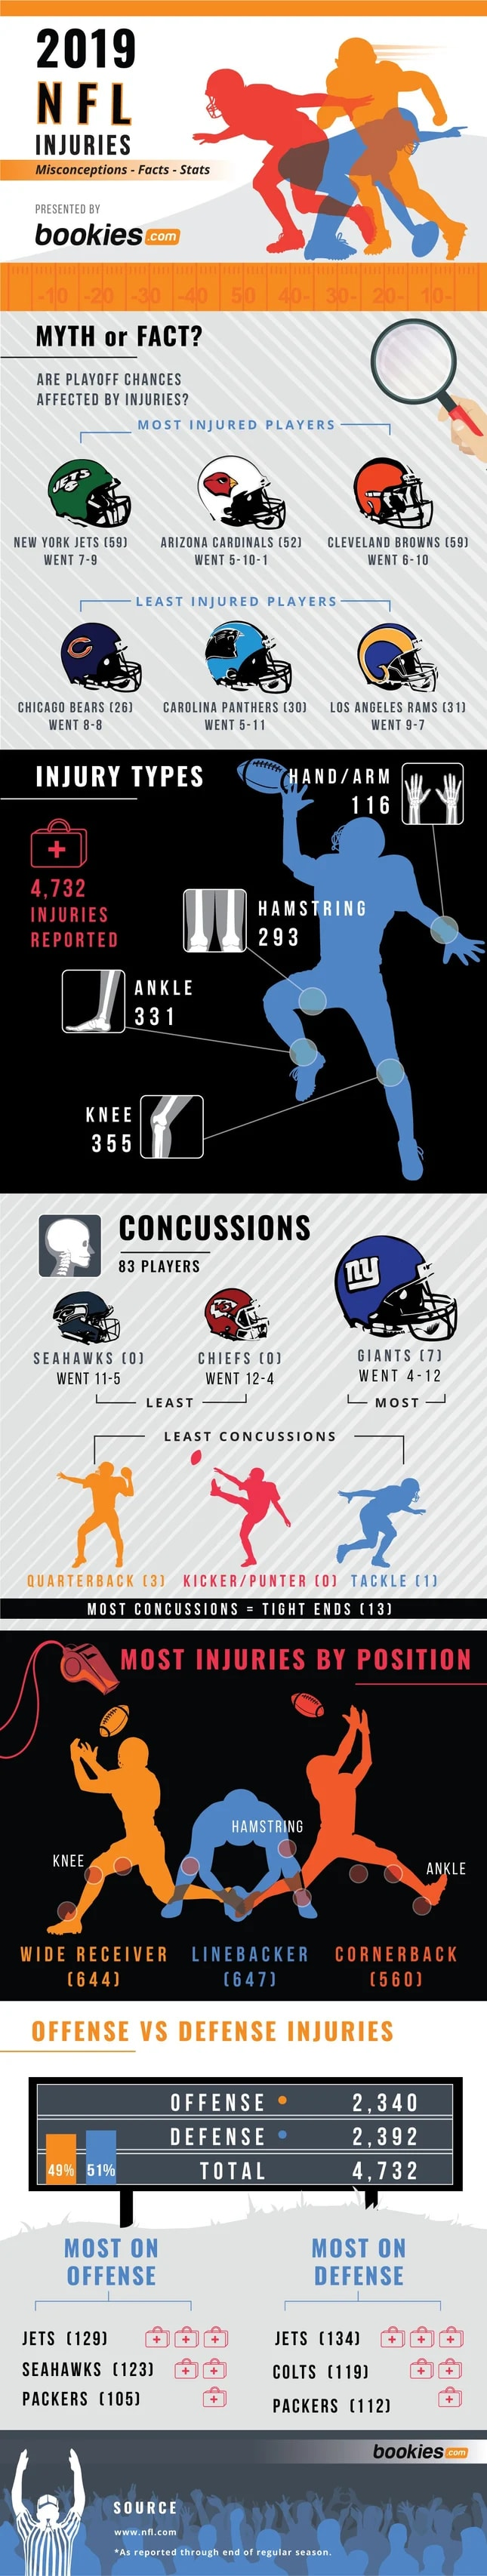 2019 NFL Injuries Misconceptions, Facts, & Stats